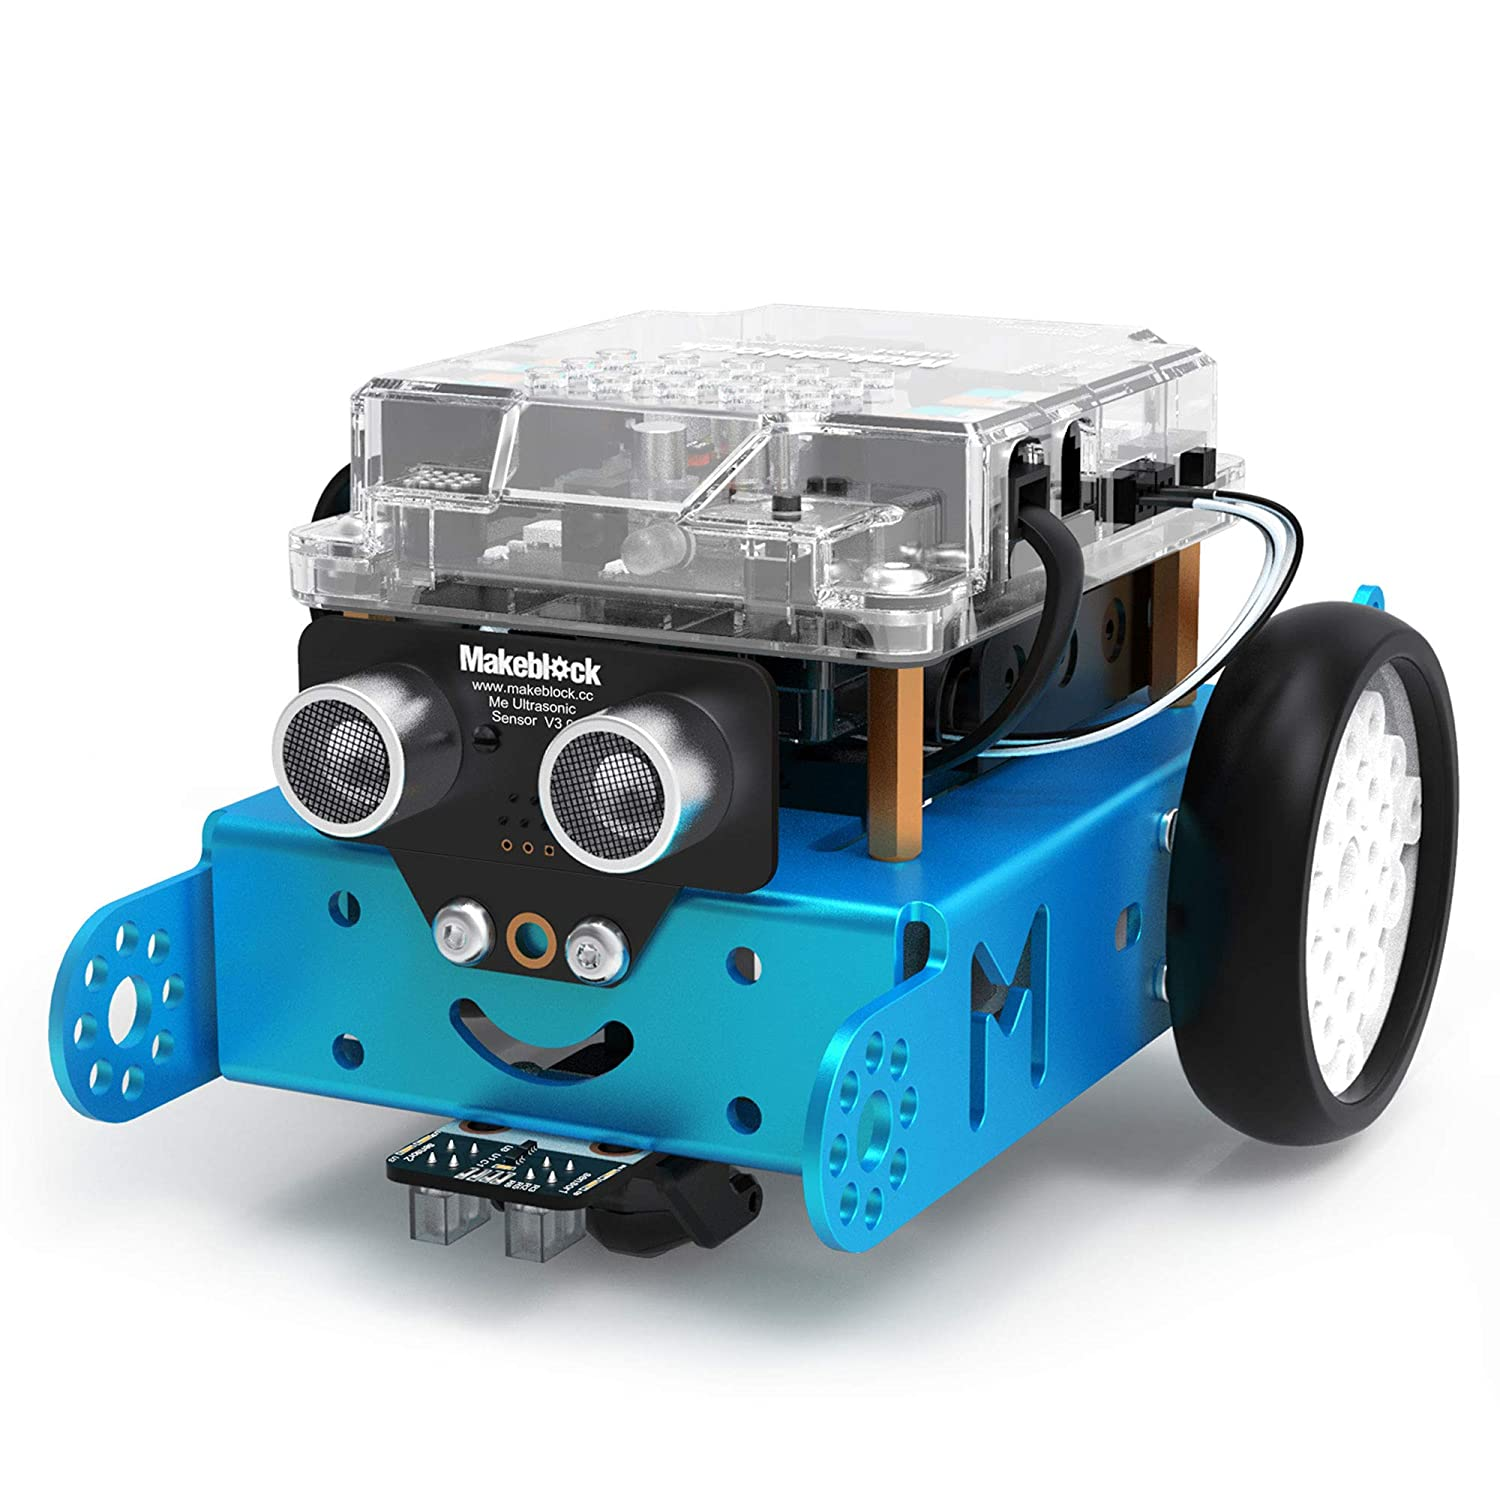 Makeblock mBot Robot Kit, DIY Mechanical Building Blocks, Entry-level Programming Helps Improve Children' s Logical Thinking and Creativity Skills, STEM Education